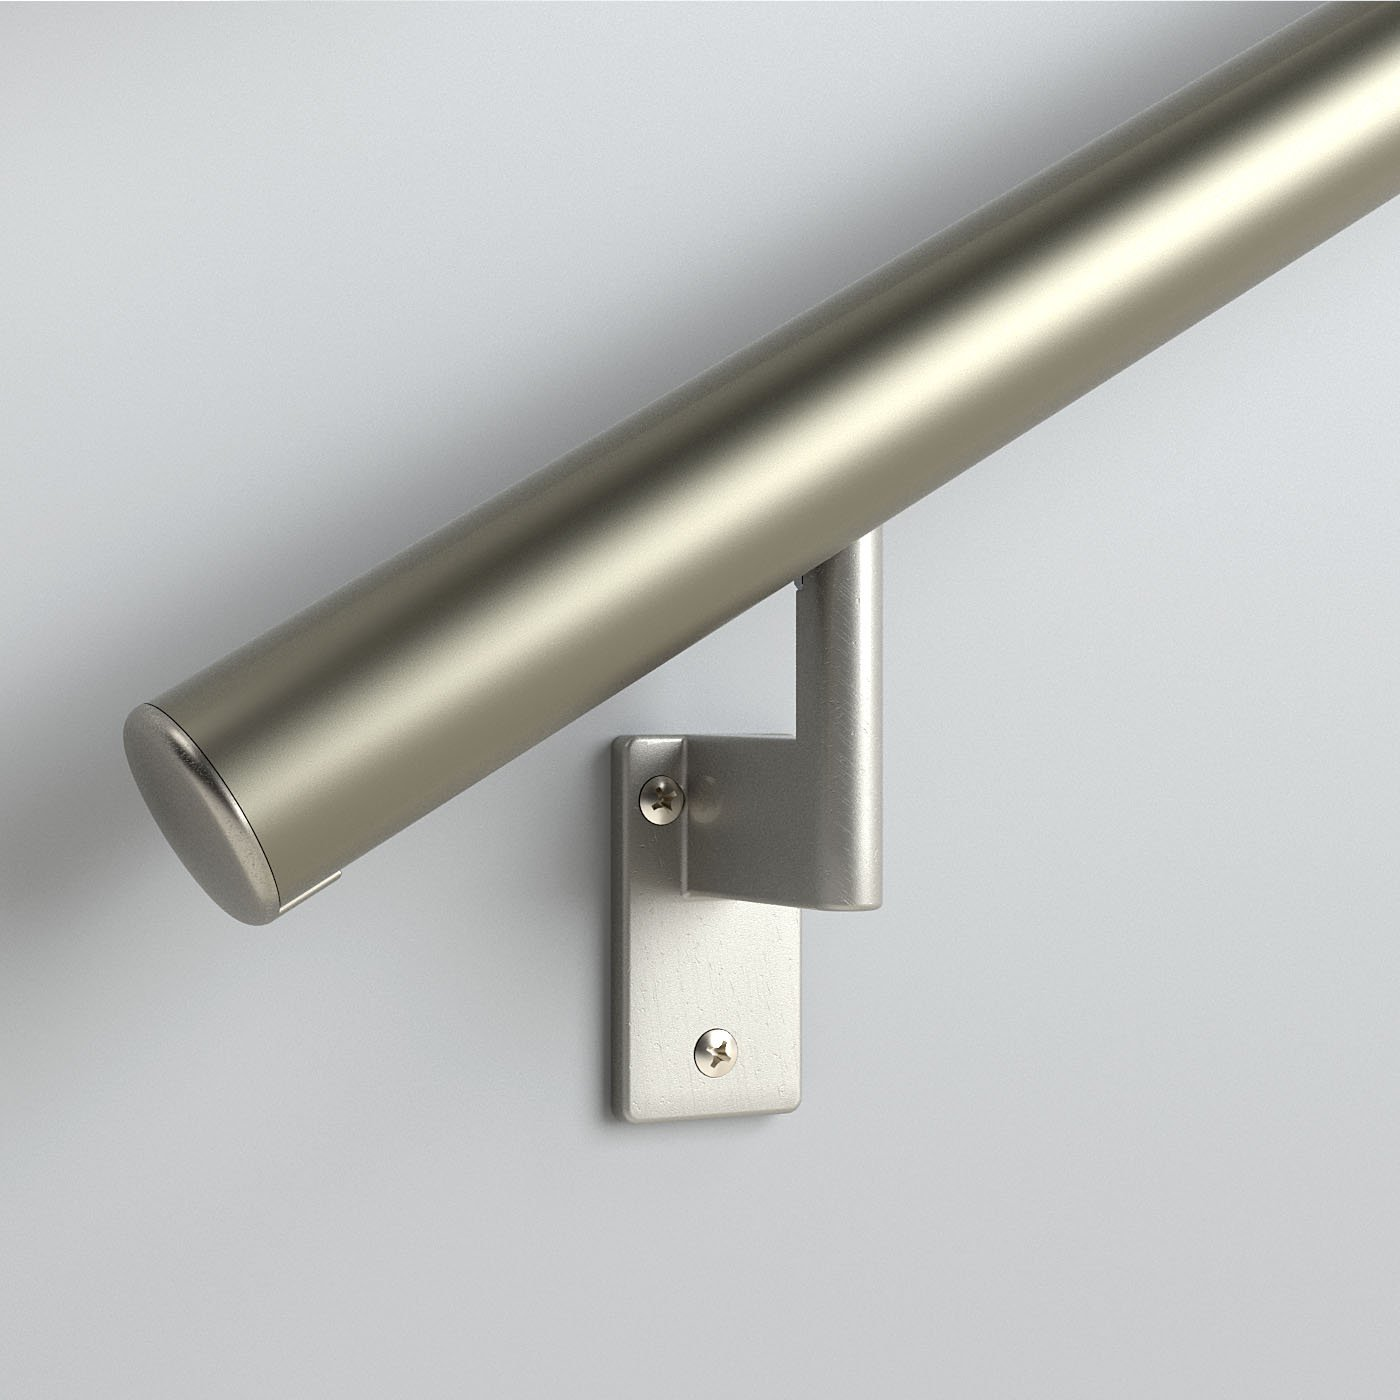 6ft. Handrail - Champagne Anodized Aluminum with 4 Matte Nickel Wall Brackets and Endcaps - 1.6'' Round - Complete Kit